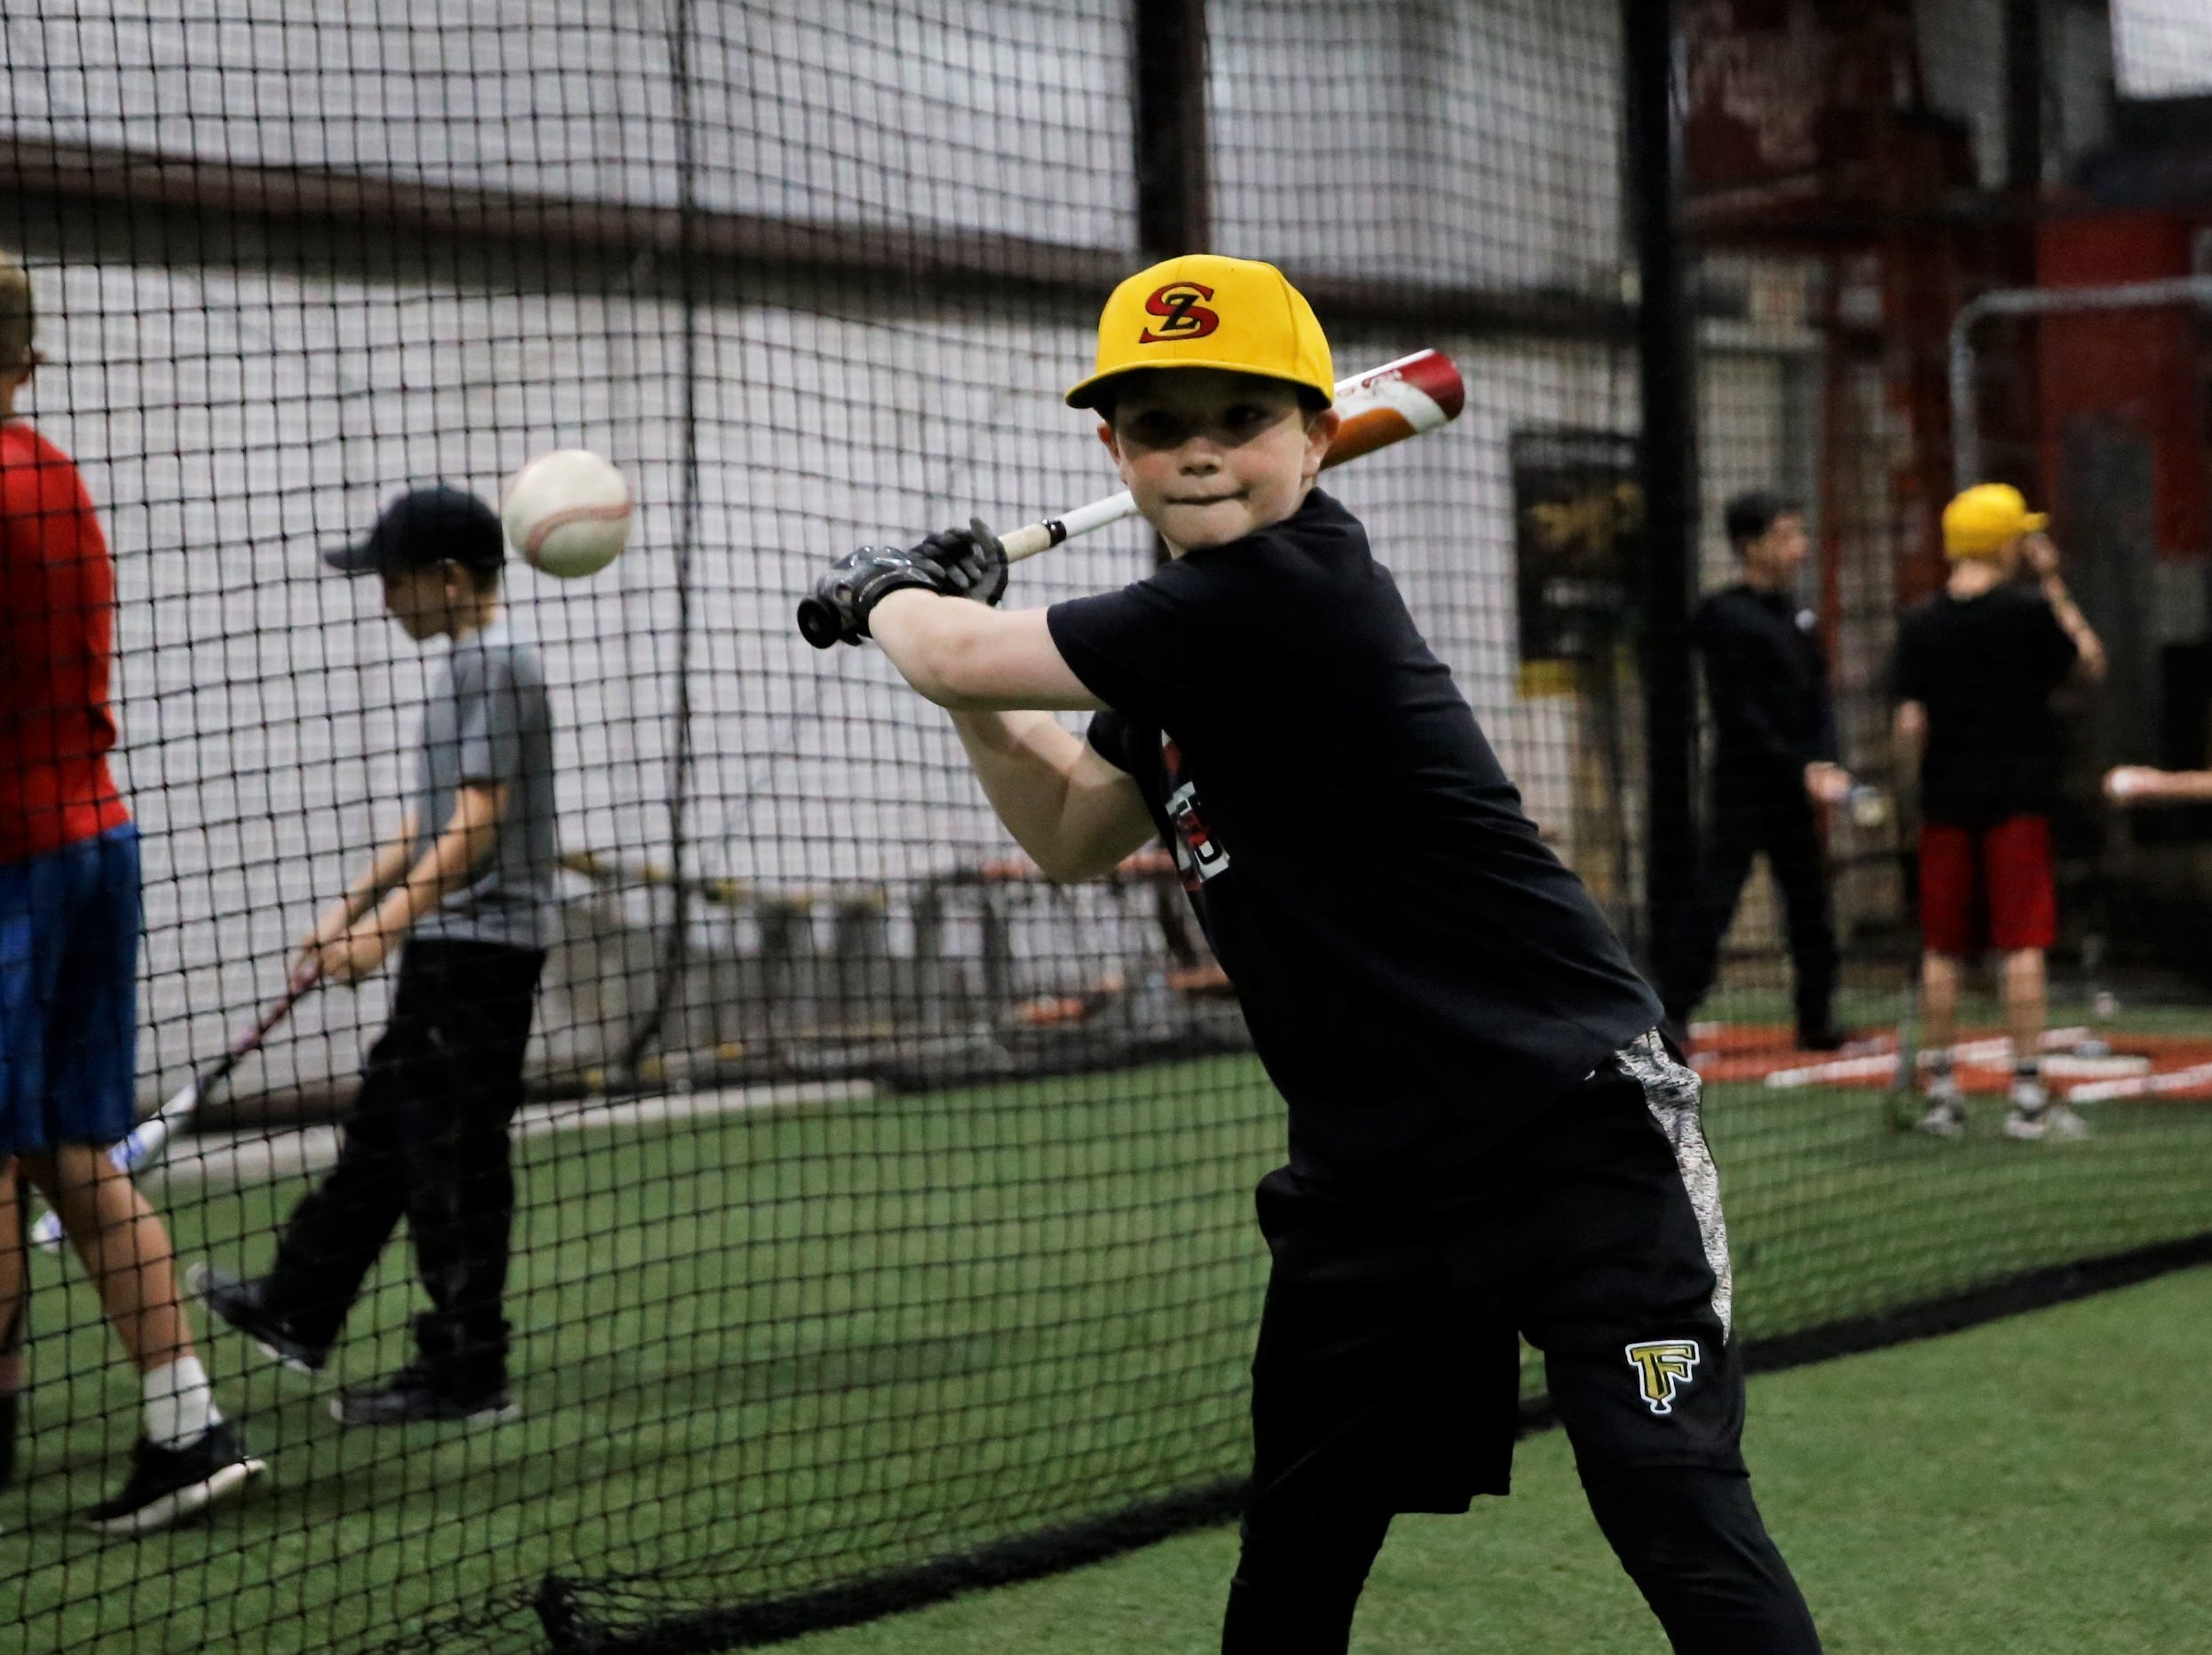 Kolby Wirth of Cortez, Colorado, swings at the ball during line-drive batting drills at the fourth annual Grinders for Grace baseball camp Saturday at the Strike Zone training facility in Farmington.